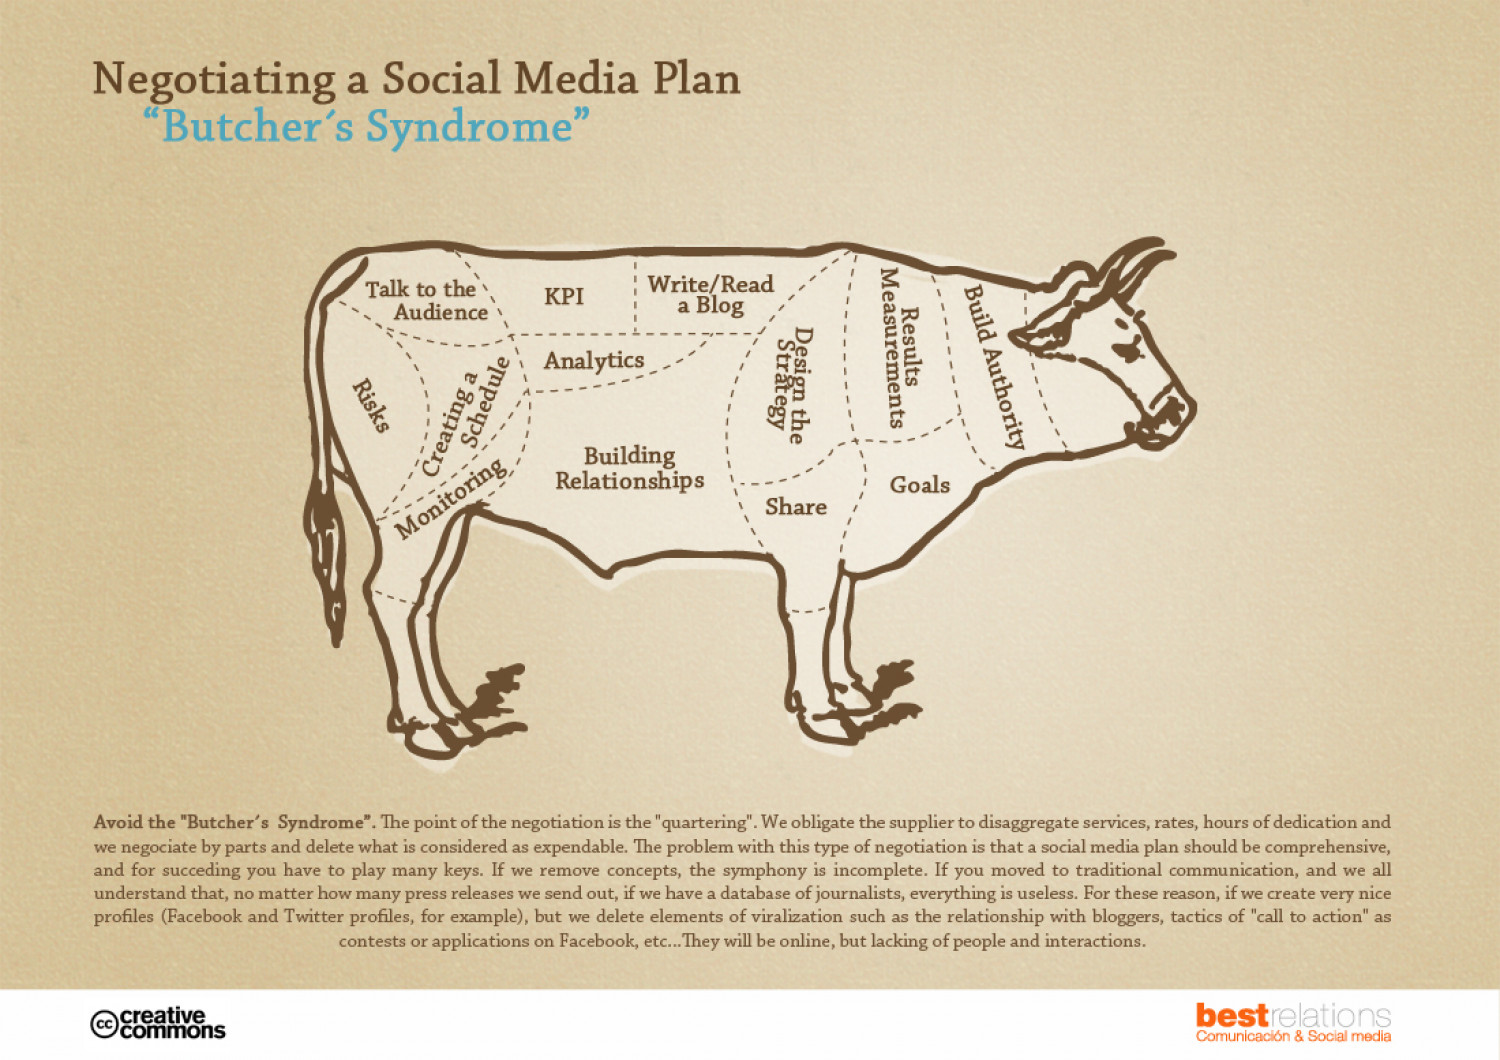 Negotiating a Social Media Plan Infographic